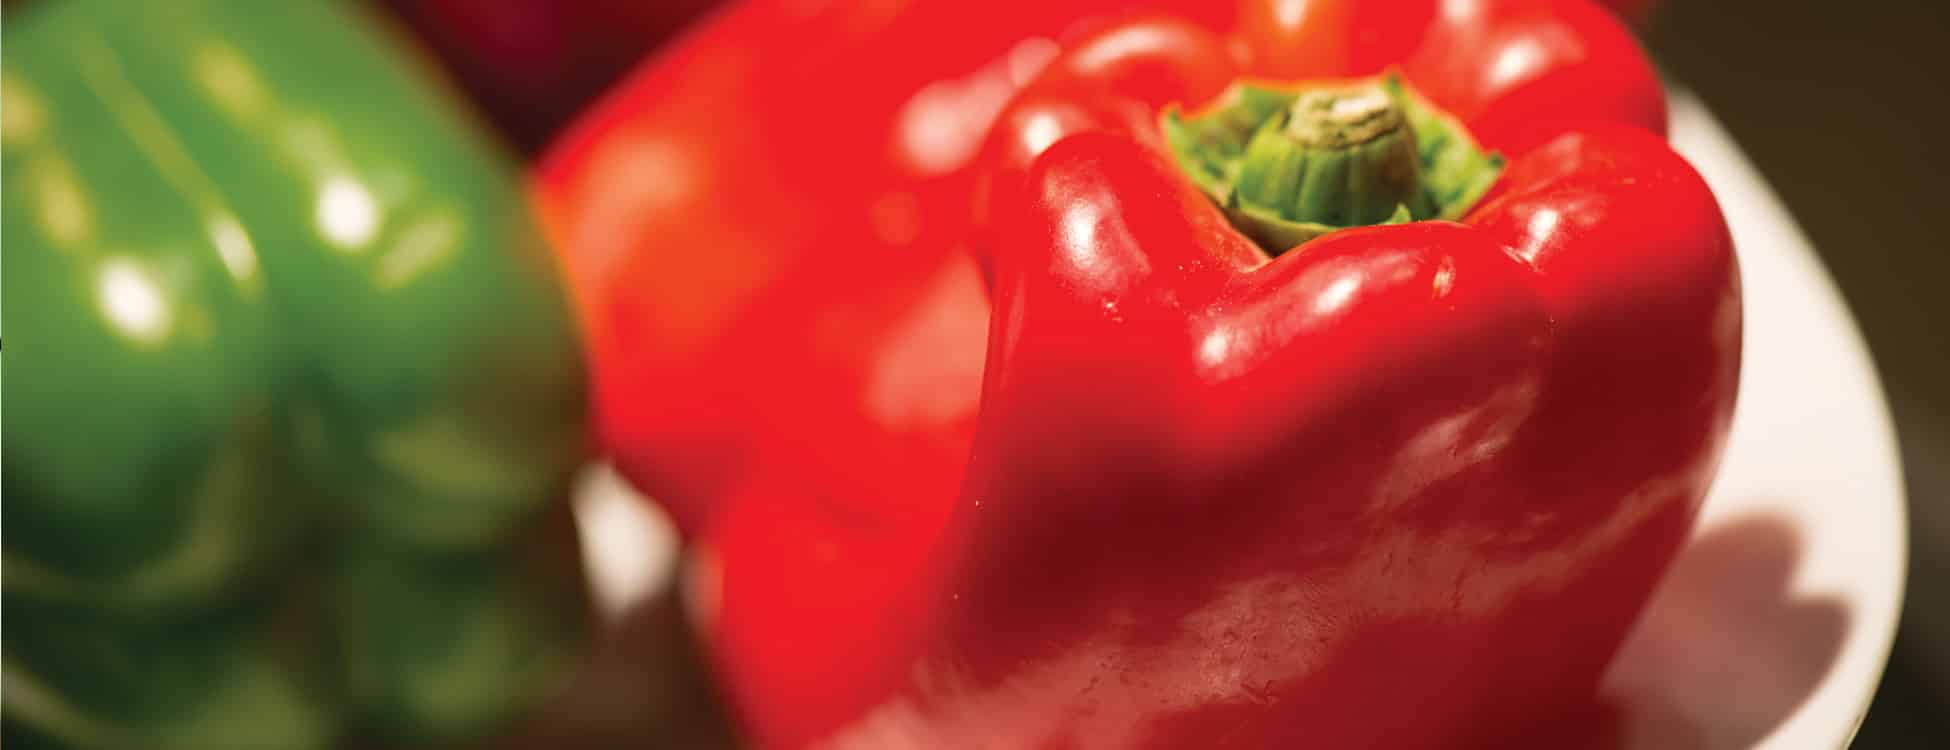 red pepper, food, dining hall, healthy eating